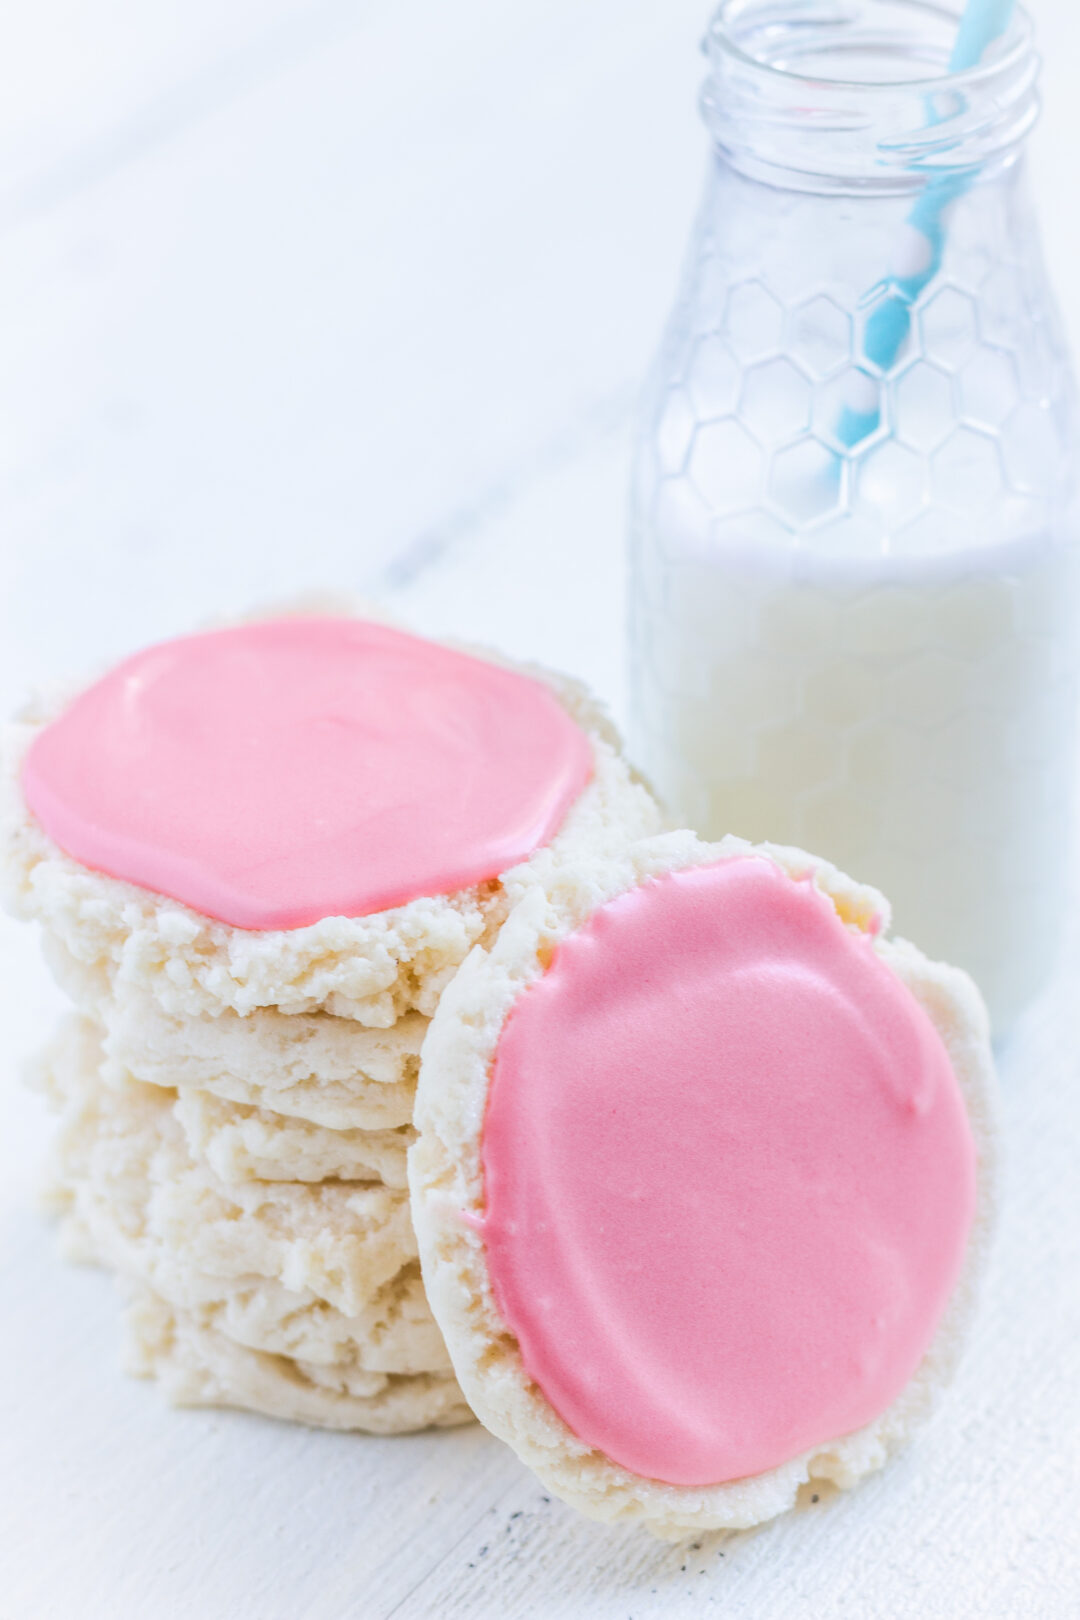 Swig cookies: A stack of sugar cookies with pink frosting and a glass of milk